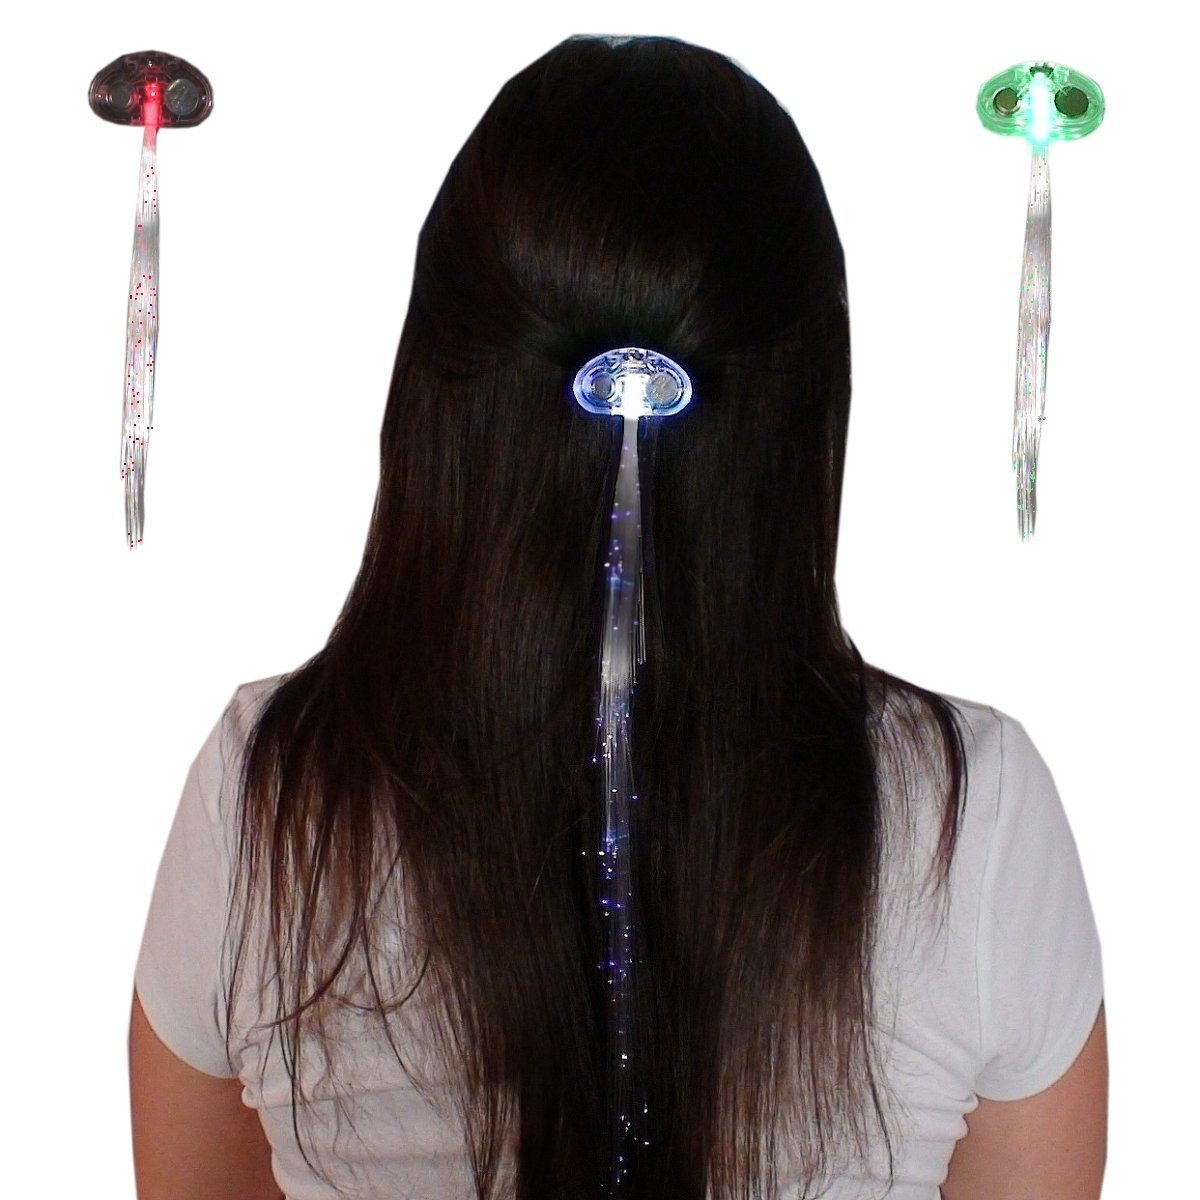 LED Fiber Optic Light-Up Oval Clear Hair Barrette, Multicolor - Better Than Glowbys!